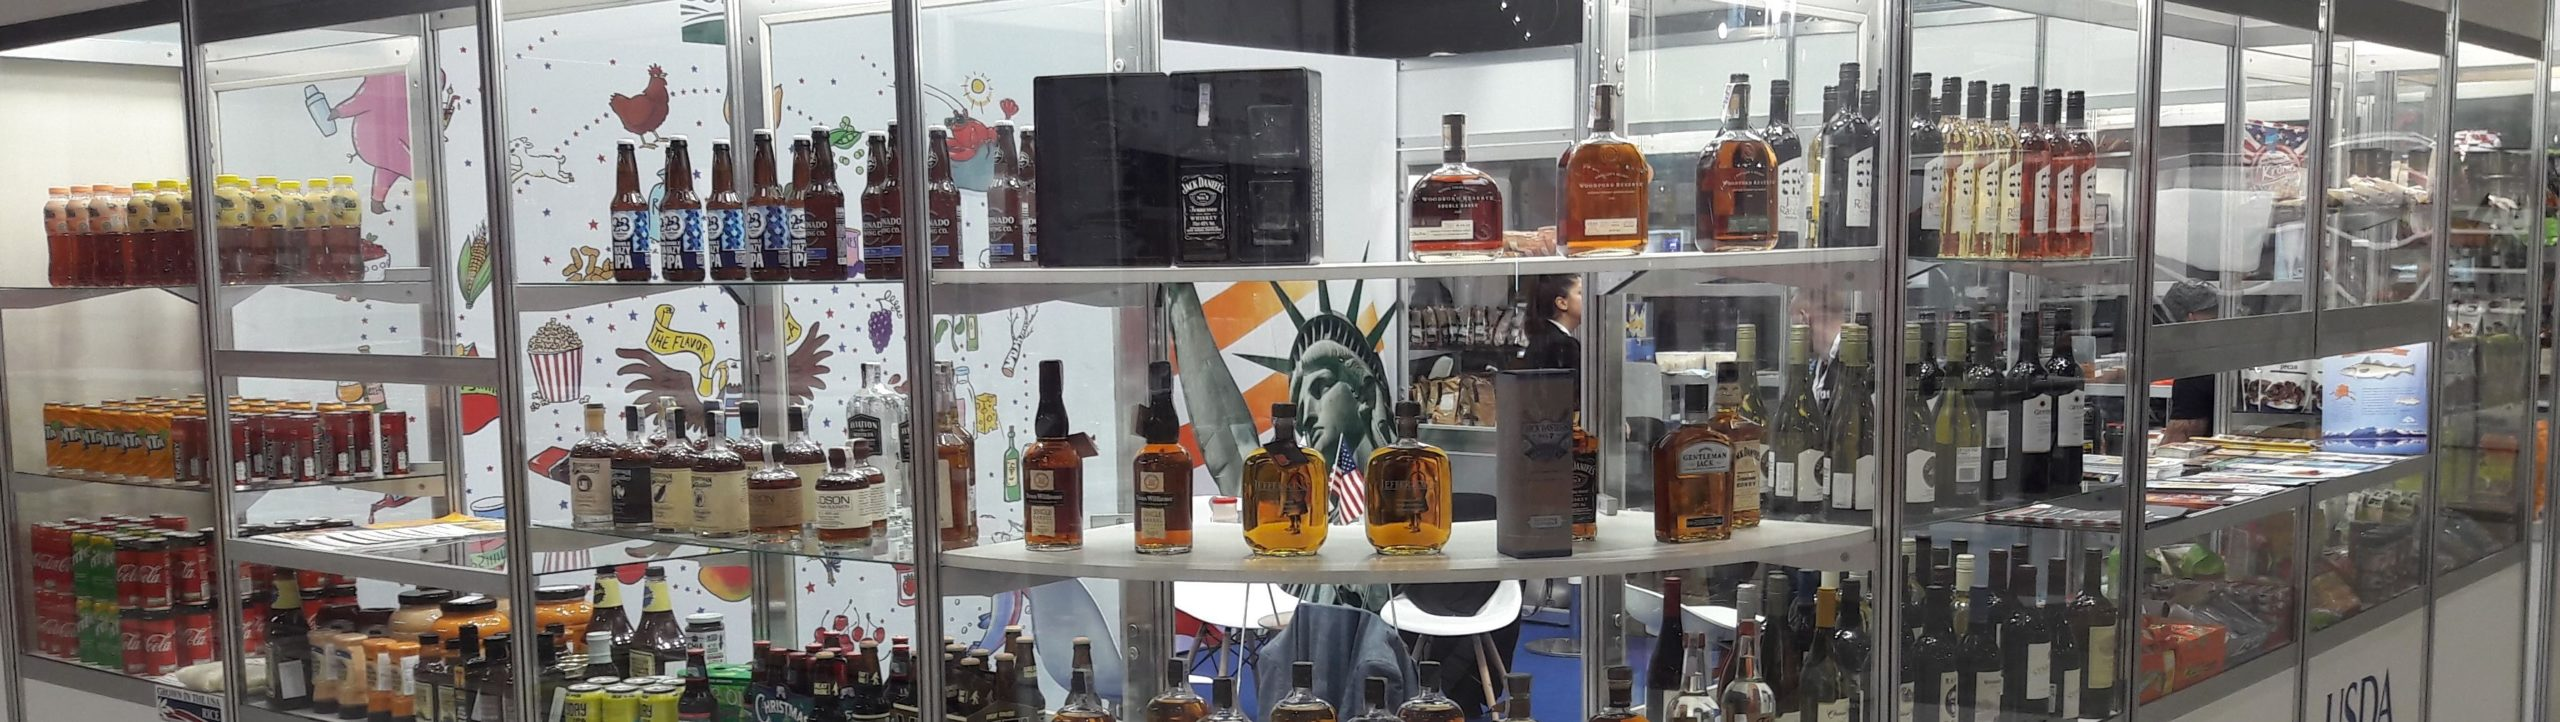 FAS Sofia to Exhibit at Inter Food and Drink Trade Show, Bulgaria